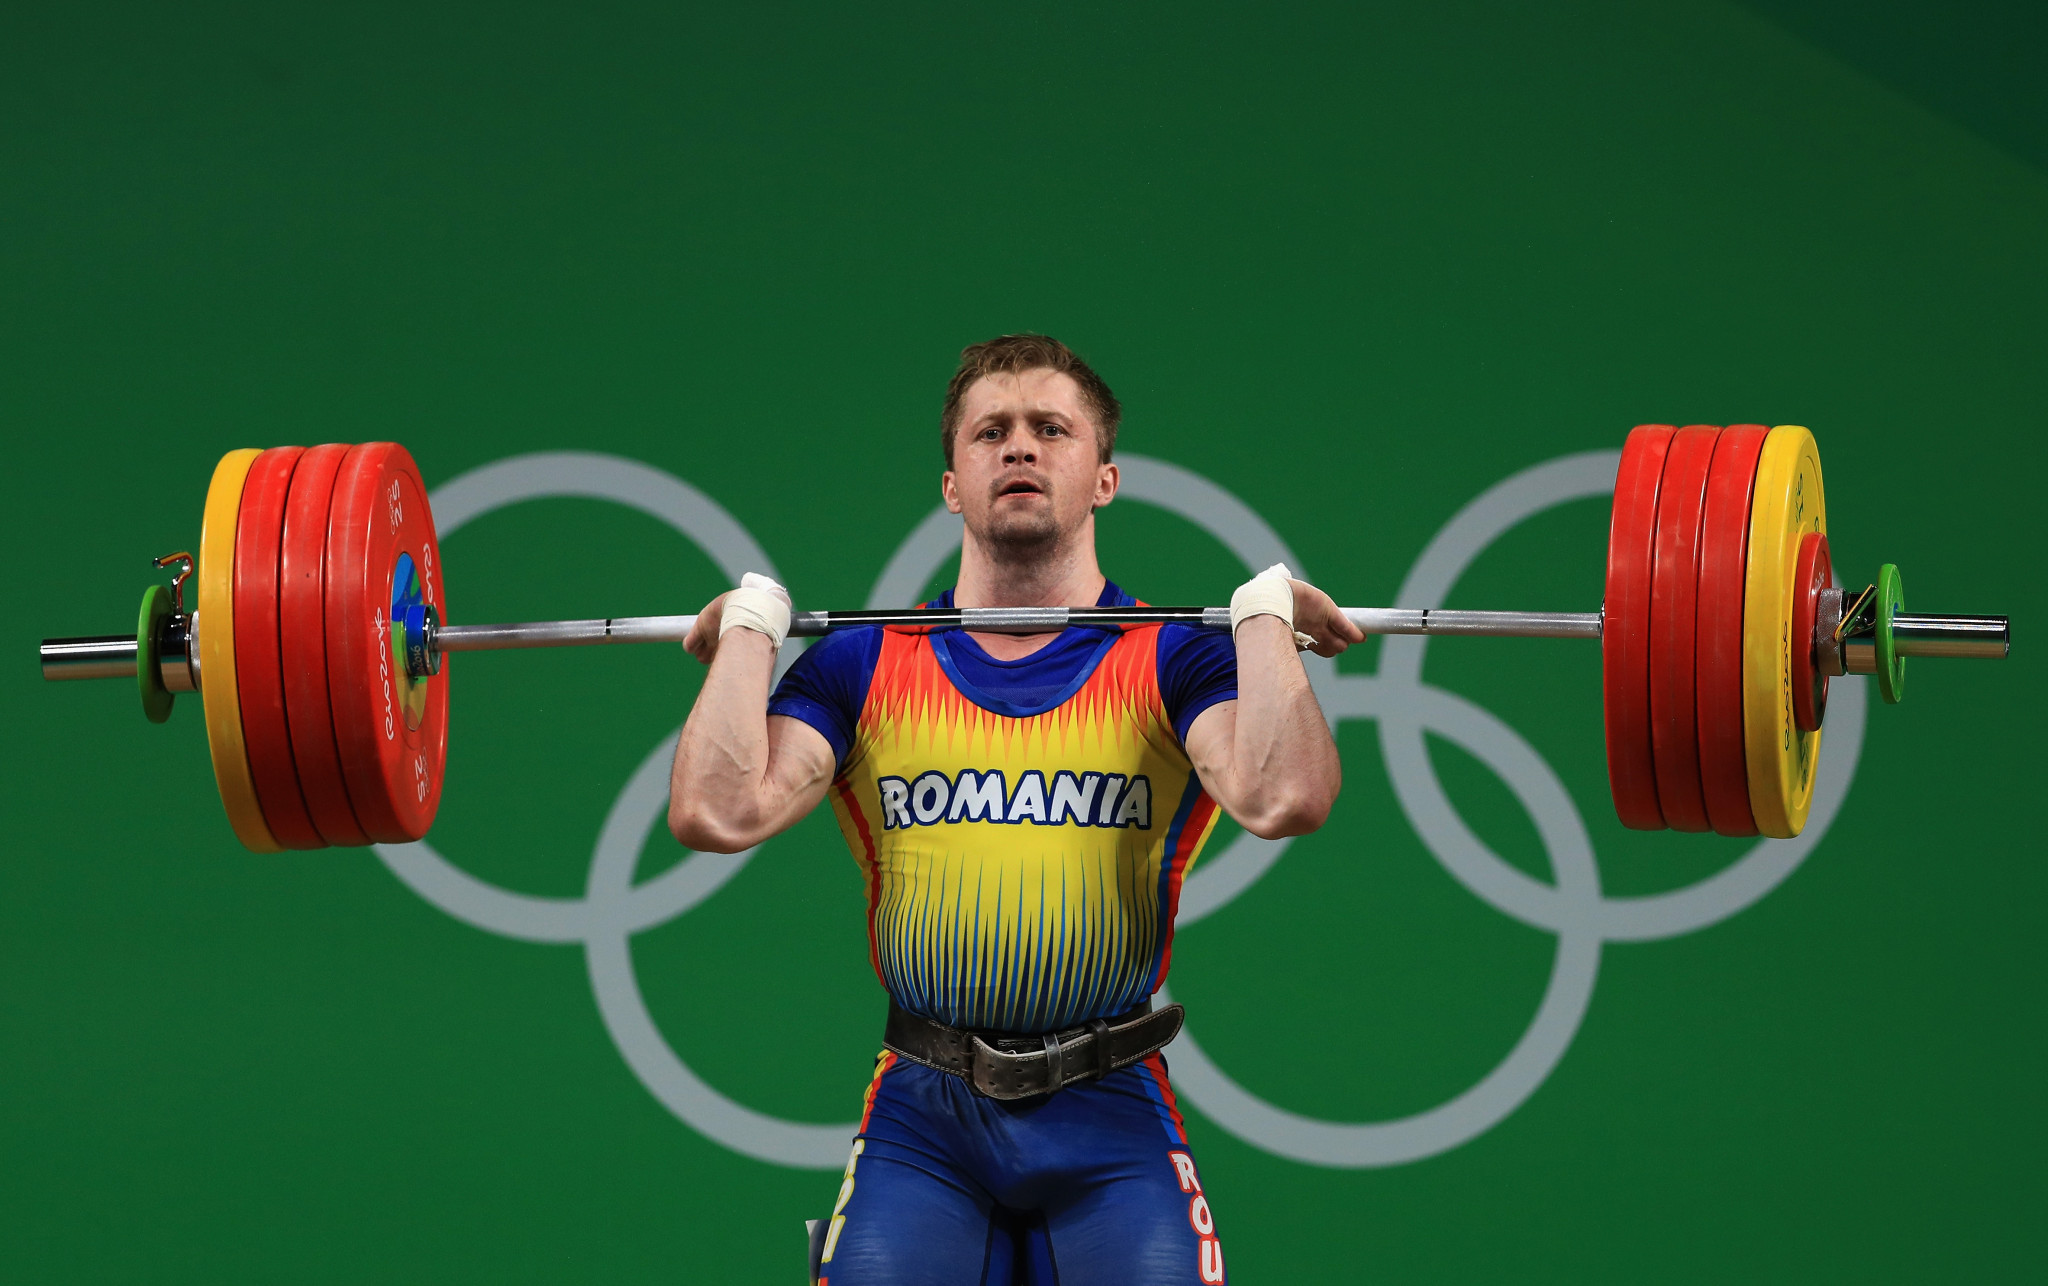 All four of Romania's weightlifters at London 2012 have now tested positive for drugs following news that a reanalysis of Gabriel Sîncrăian's sample has shown traces of anabolic steroids ©Getty Images